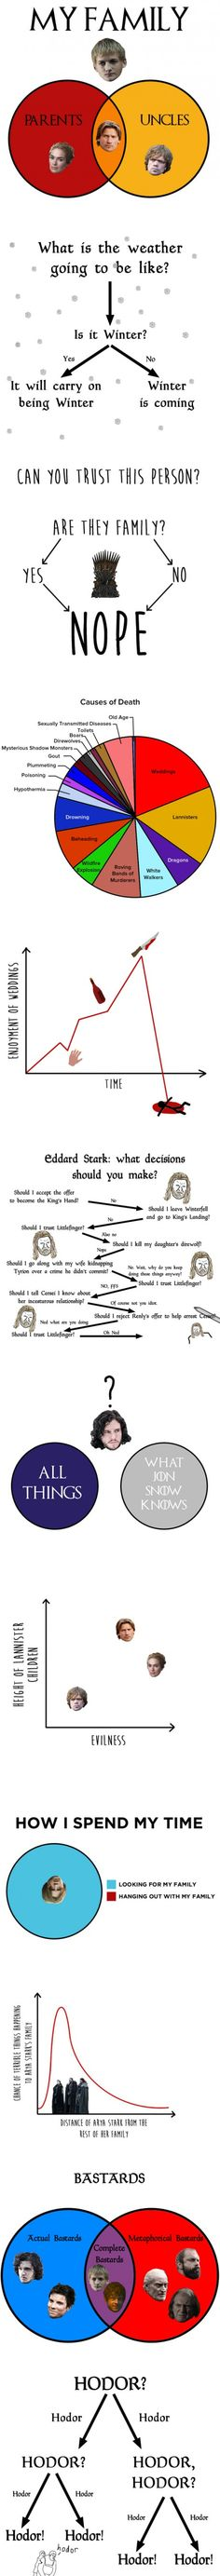 12 Charts Only Game Of Thrones Fans Will Understand. You know nothing Jon Snow was probably my favorite. The Walking Dead, Game Of Thrones Funny, Game Thrones, Got Memes, My Sun And Stars, Valar Morghulis, Geek Out, Winter Is Coming, Best Funny Pictures